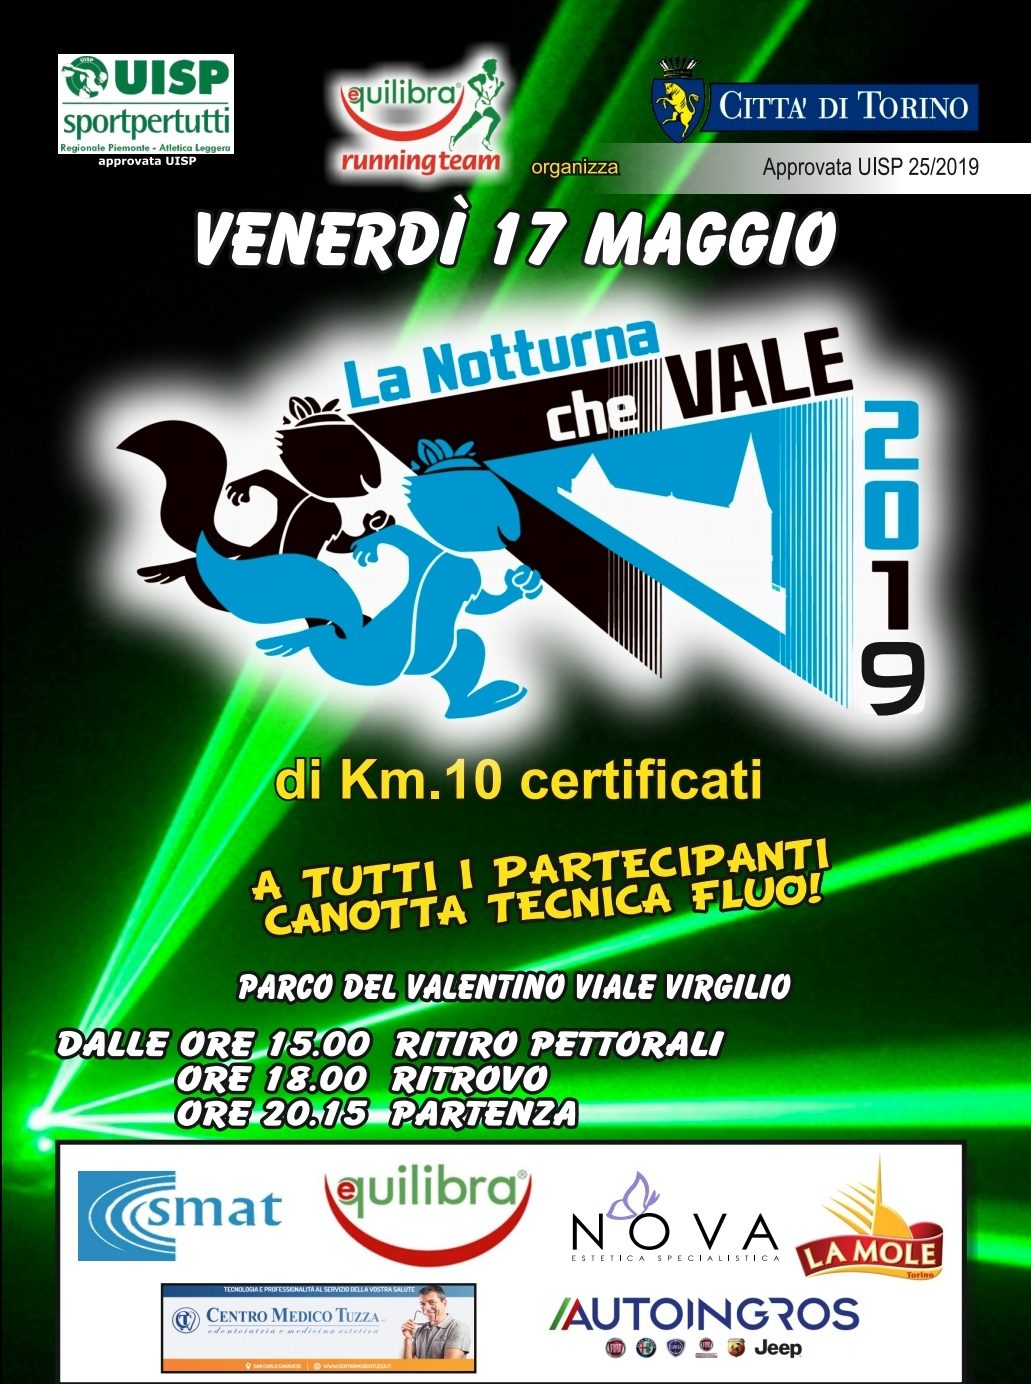 Notturna che Vale front